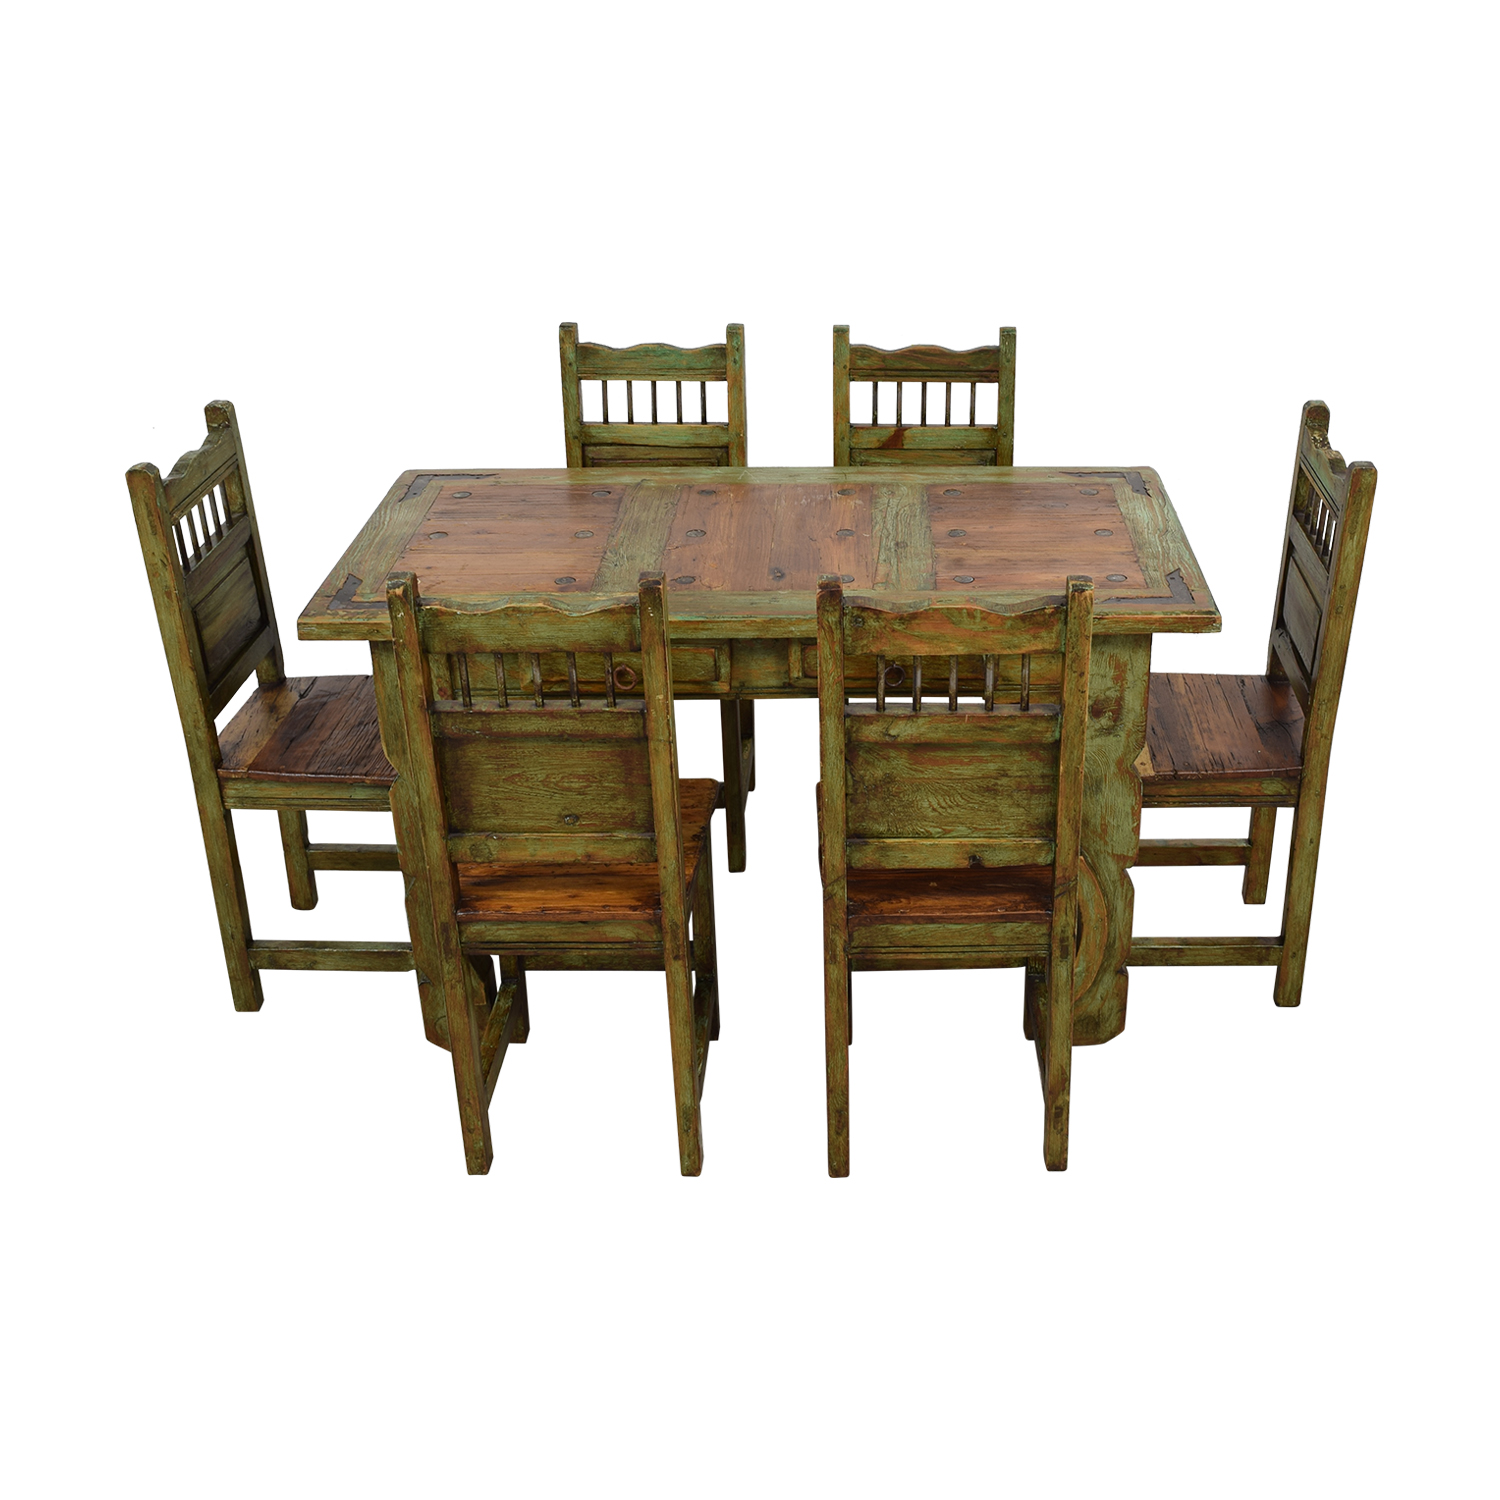 El Barzon El Barzon Southwest Rustic Recycled Wood Dining Set used